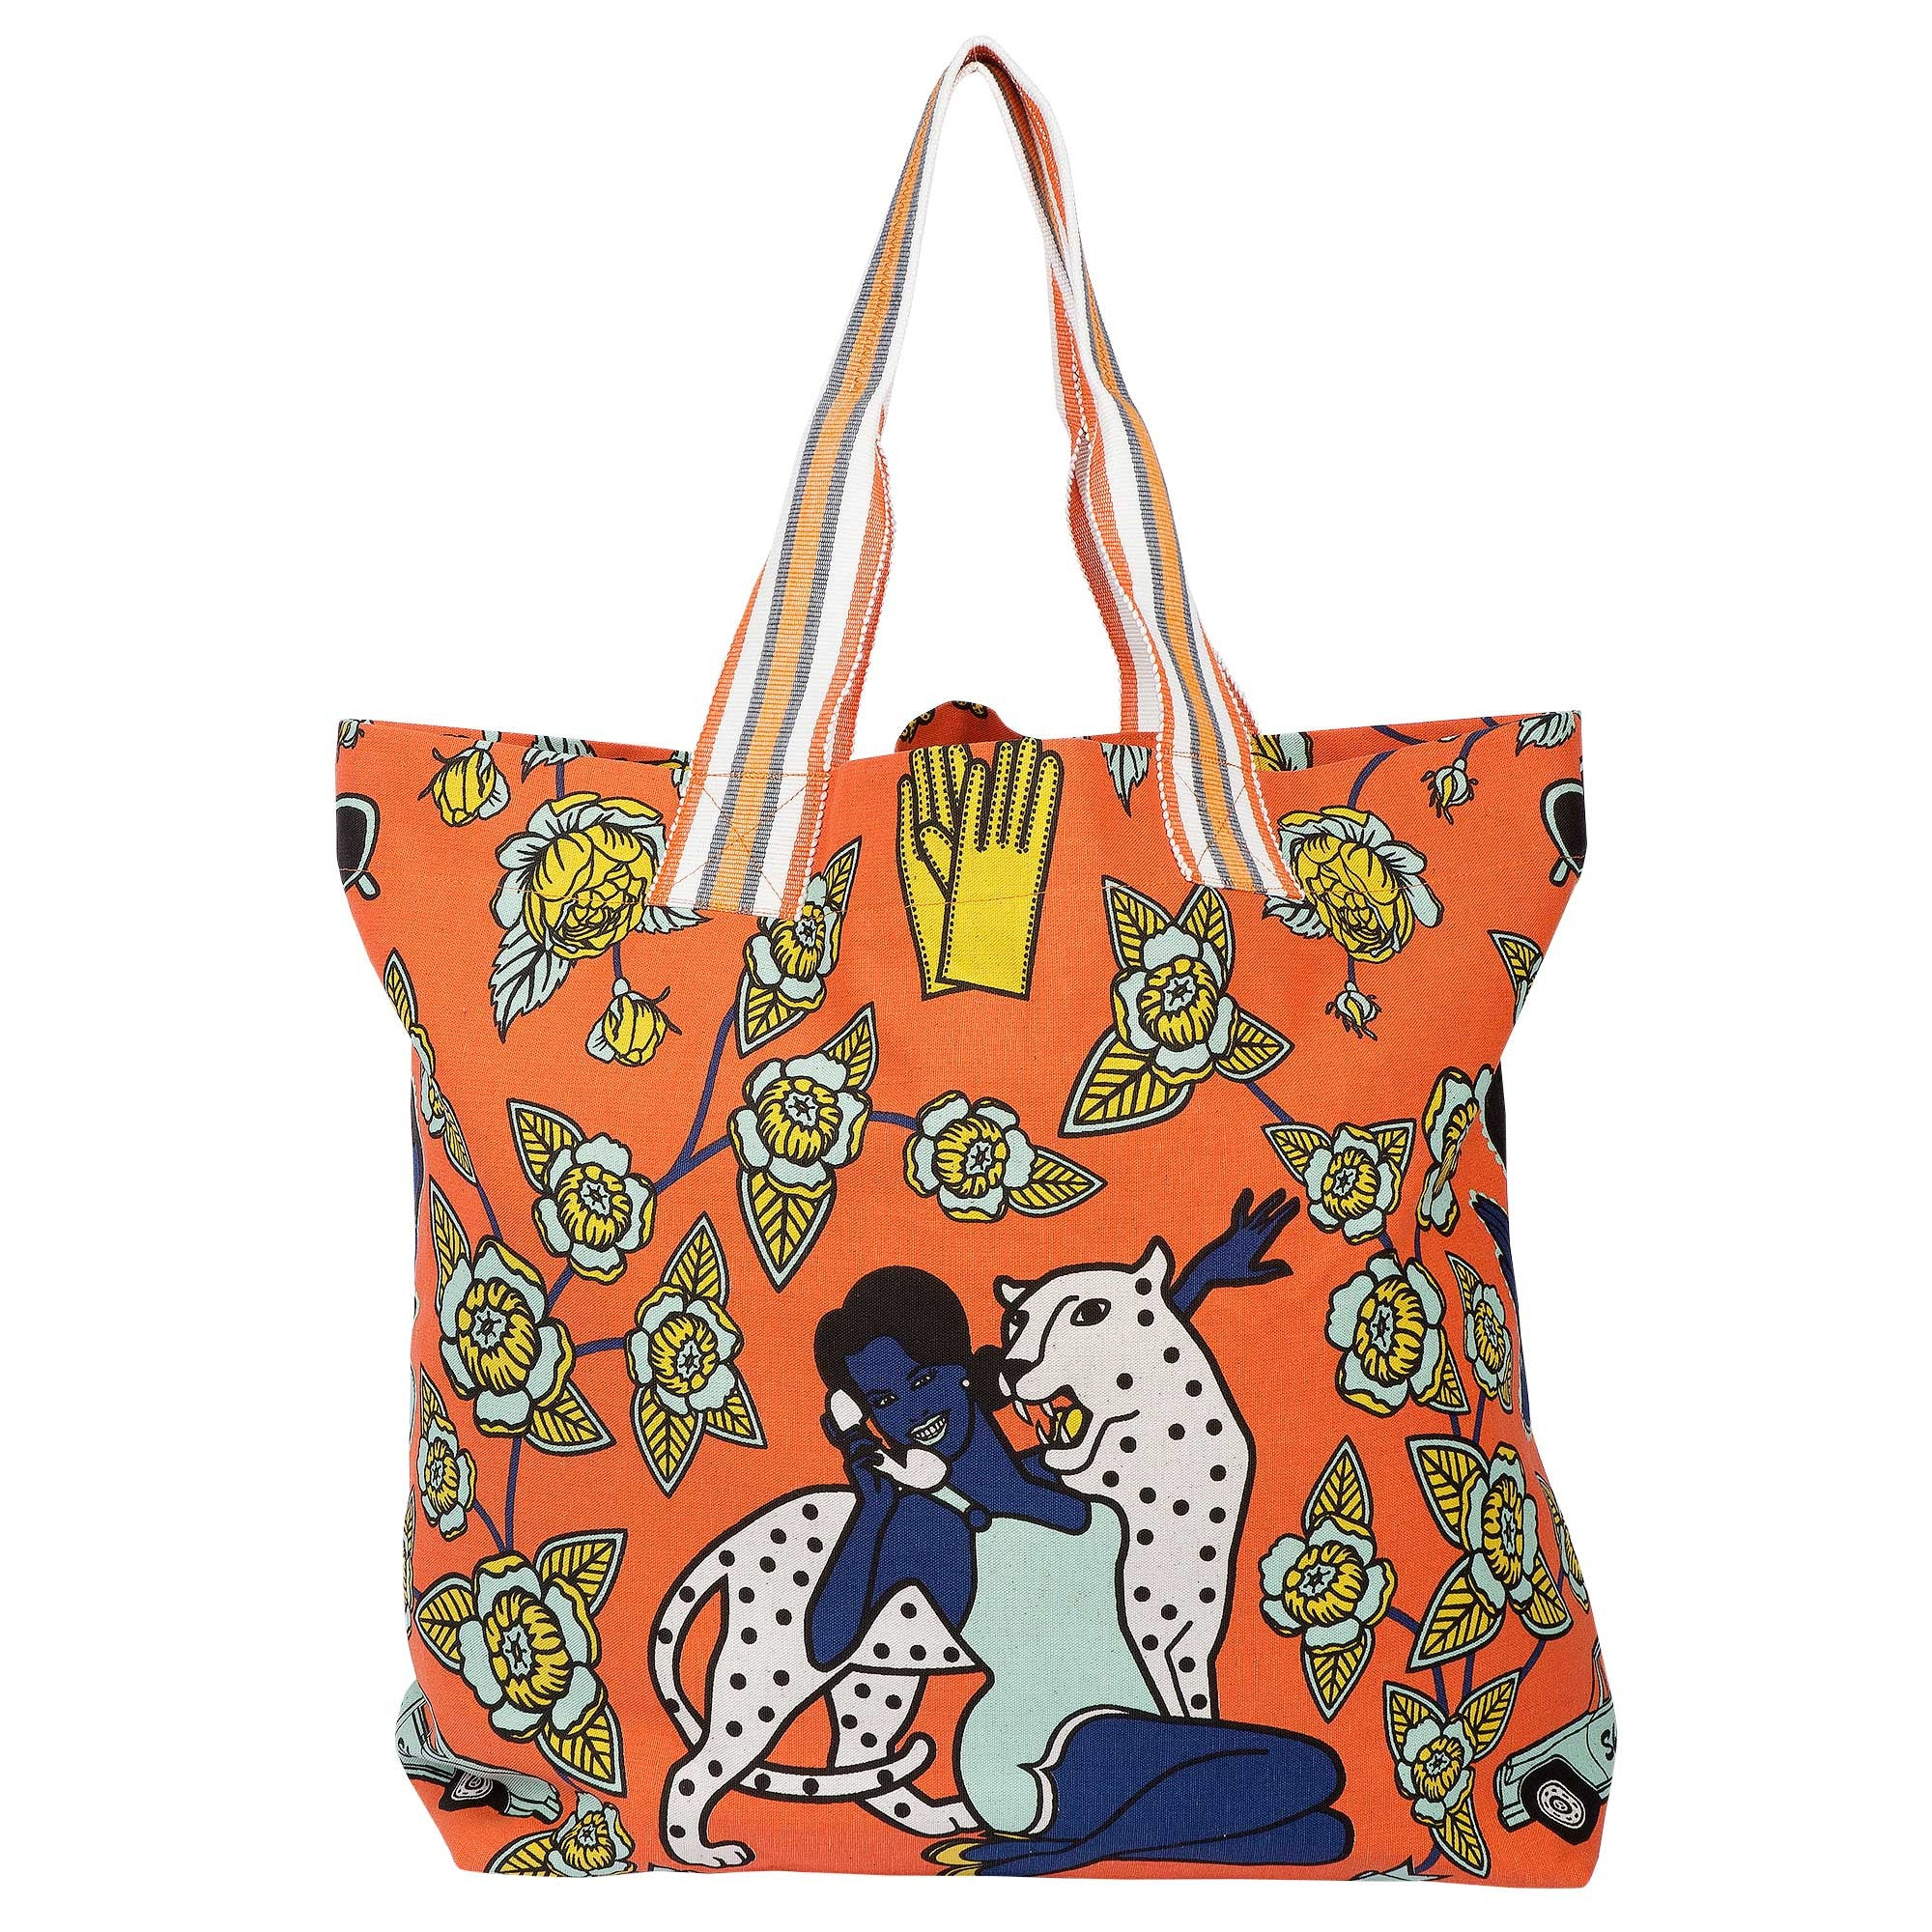 O'Baby orange beach bag